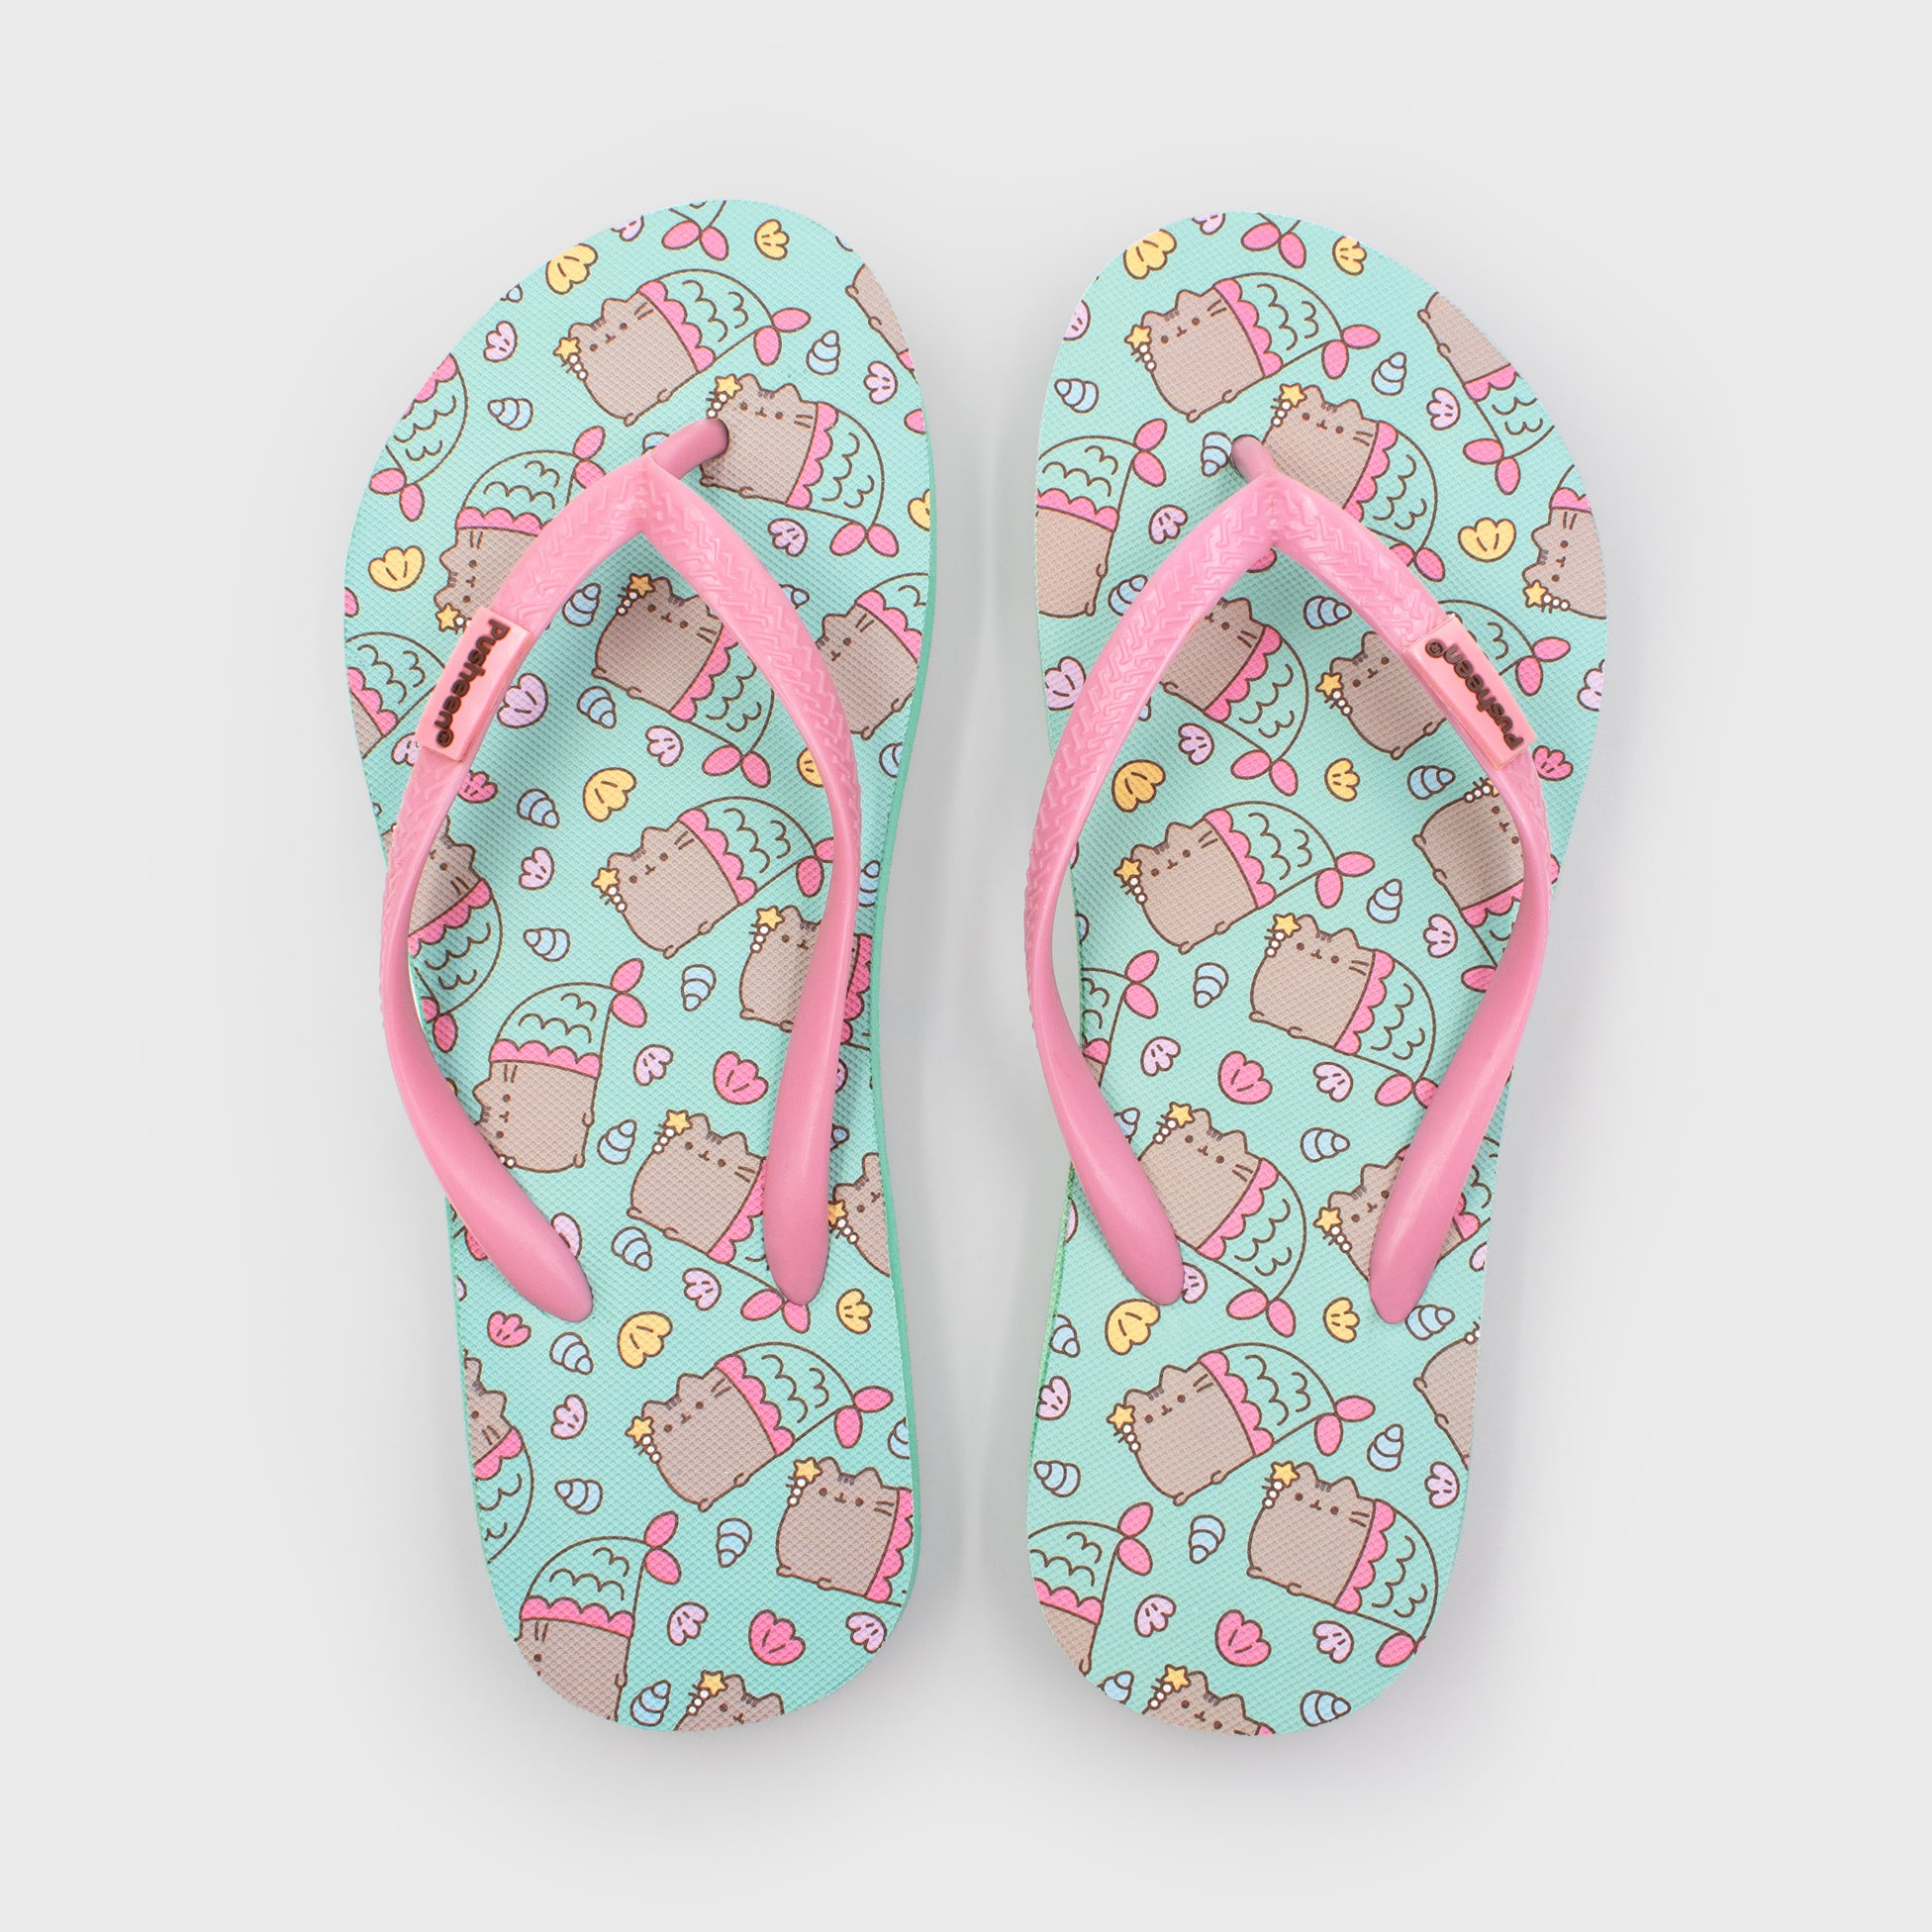 pusheen flip flops summer feetwear shoe accessory beach pool hot cute cat green mermaid adorable culturefly